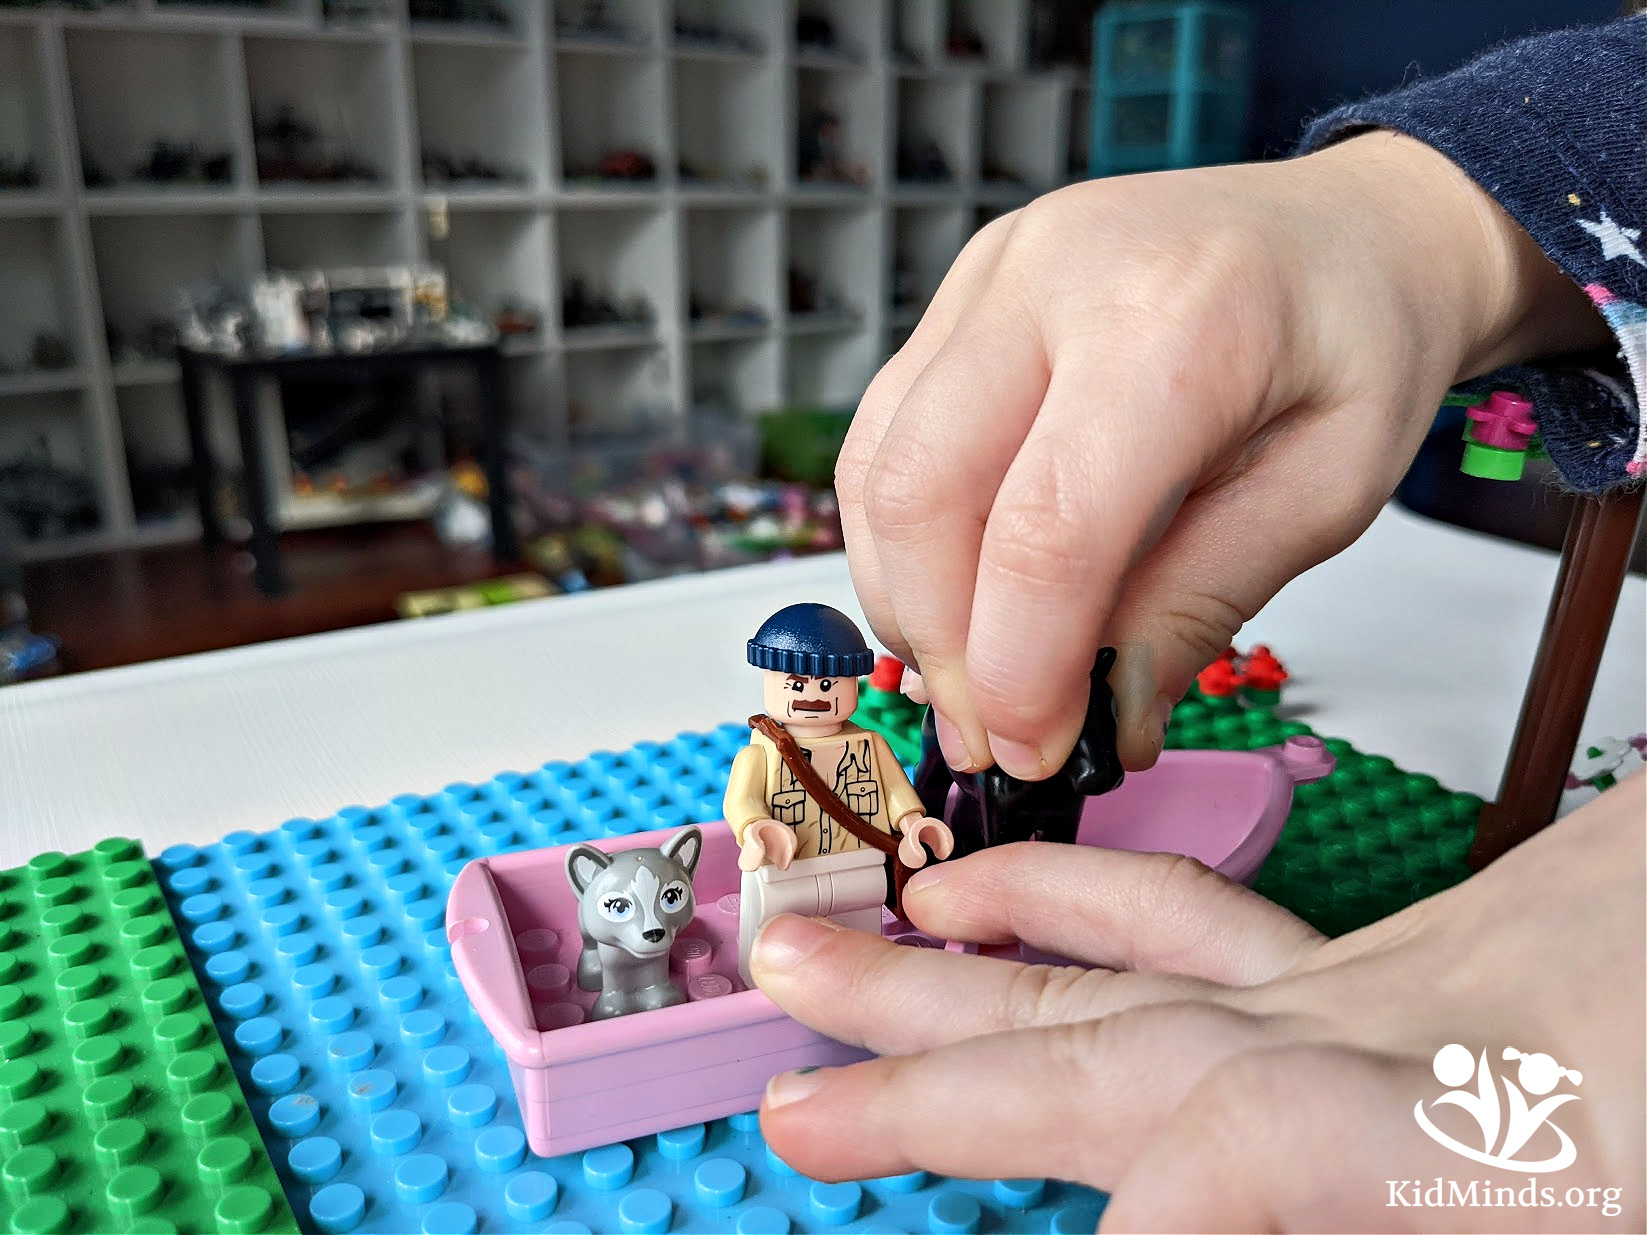 This Johnny Appleseed Challenge combines kids' favorite things (hands-on activities, LEGO, and brainteasers), and it's a great way to make Johnny Appleseed Day fun. #handsonactivities #kidsactivities #kidminds #JohnnyAppleseed #spring  #brainteasers #LEGO